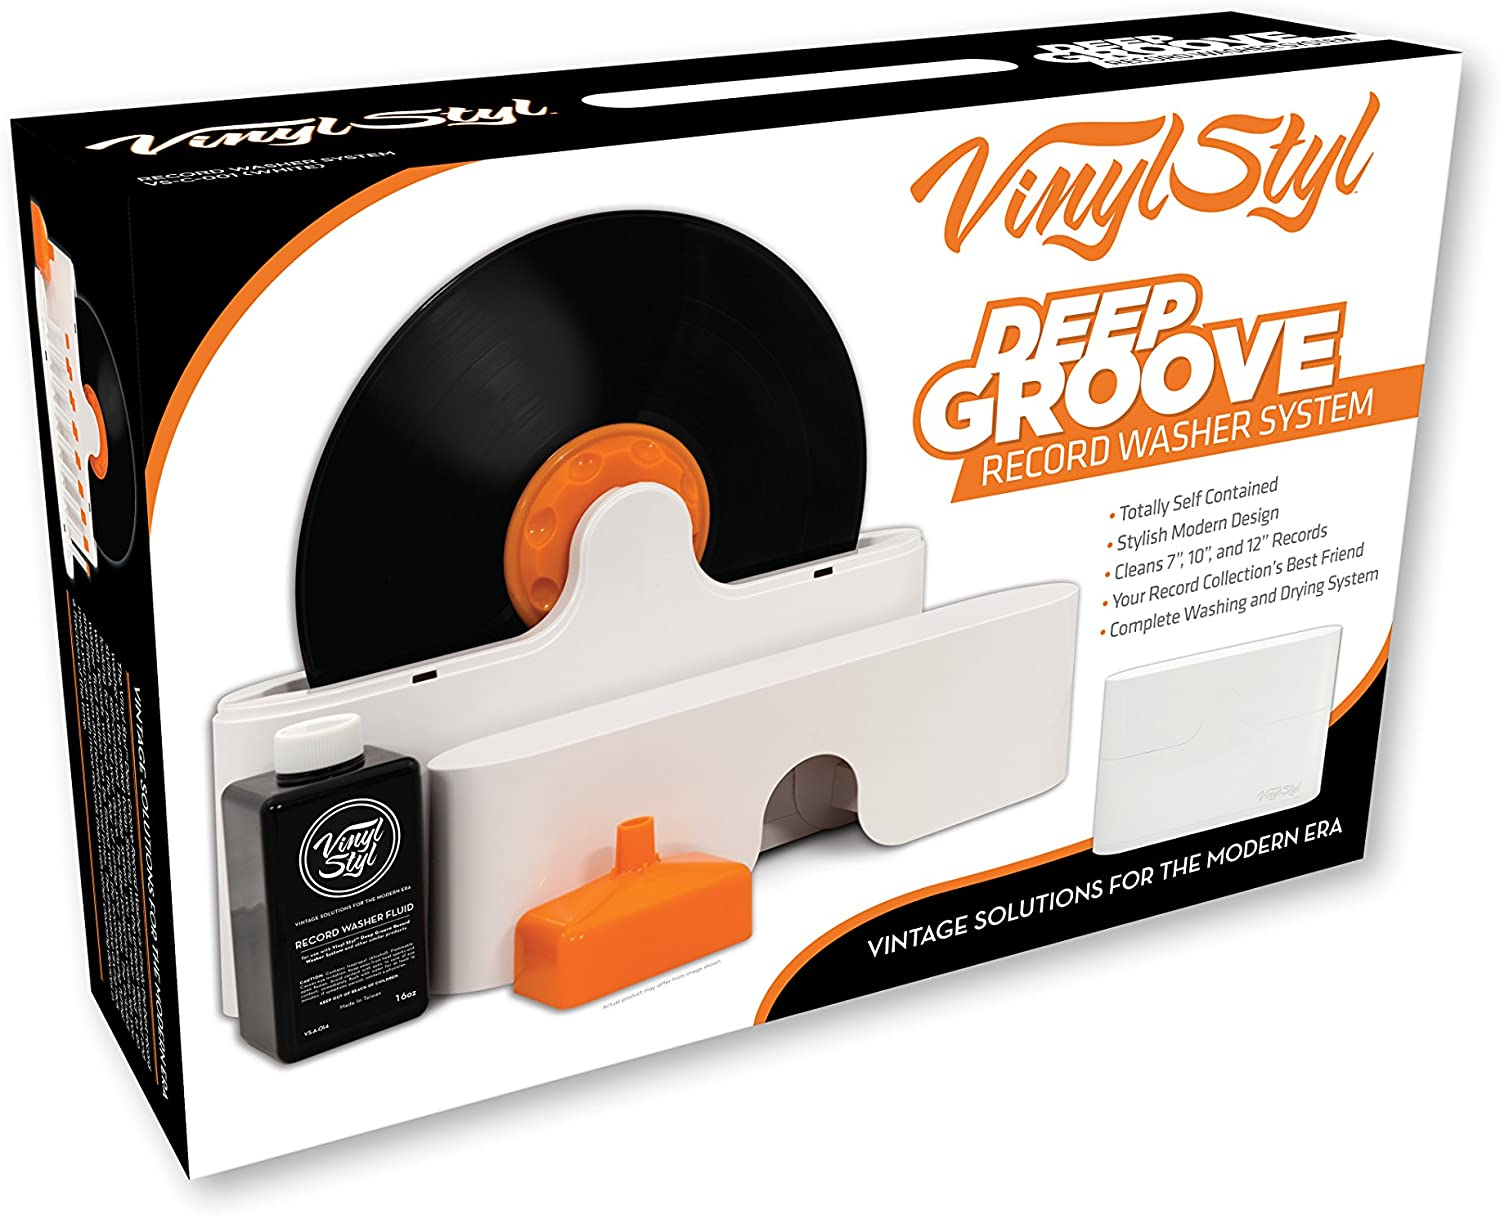 - Vinyl Styl Deep Groove Record Washer System